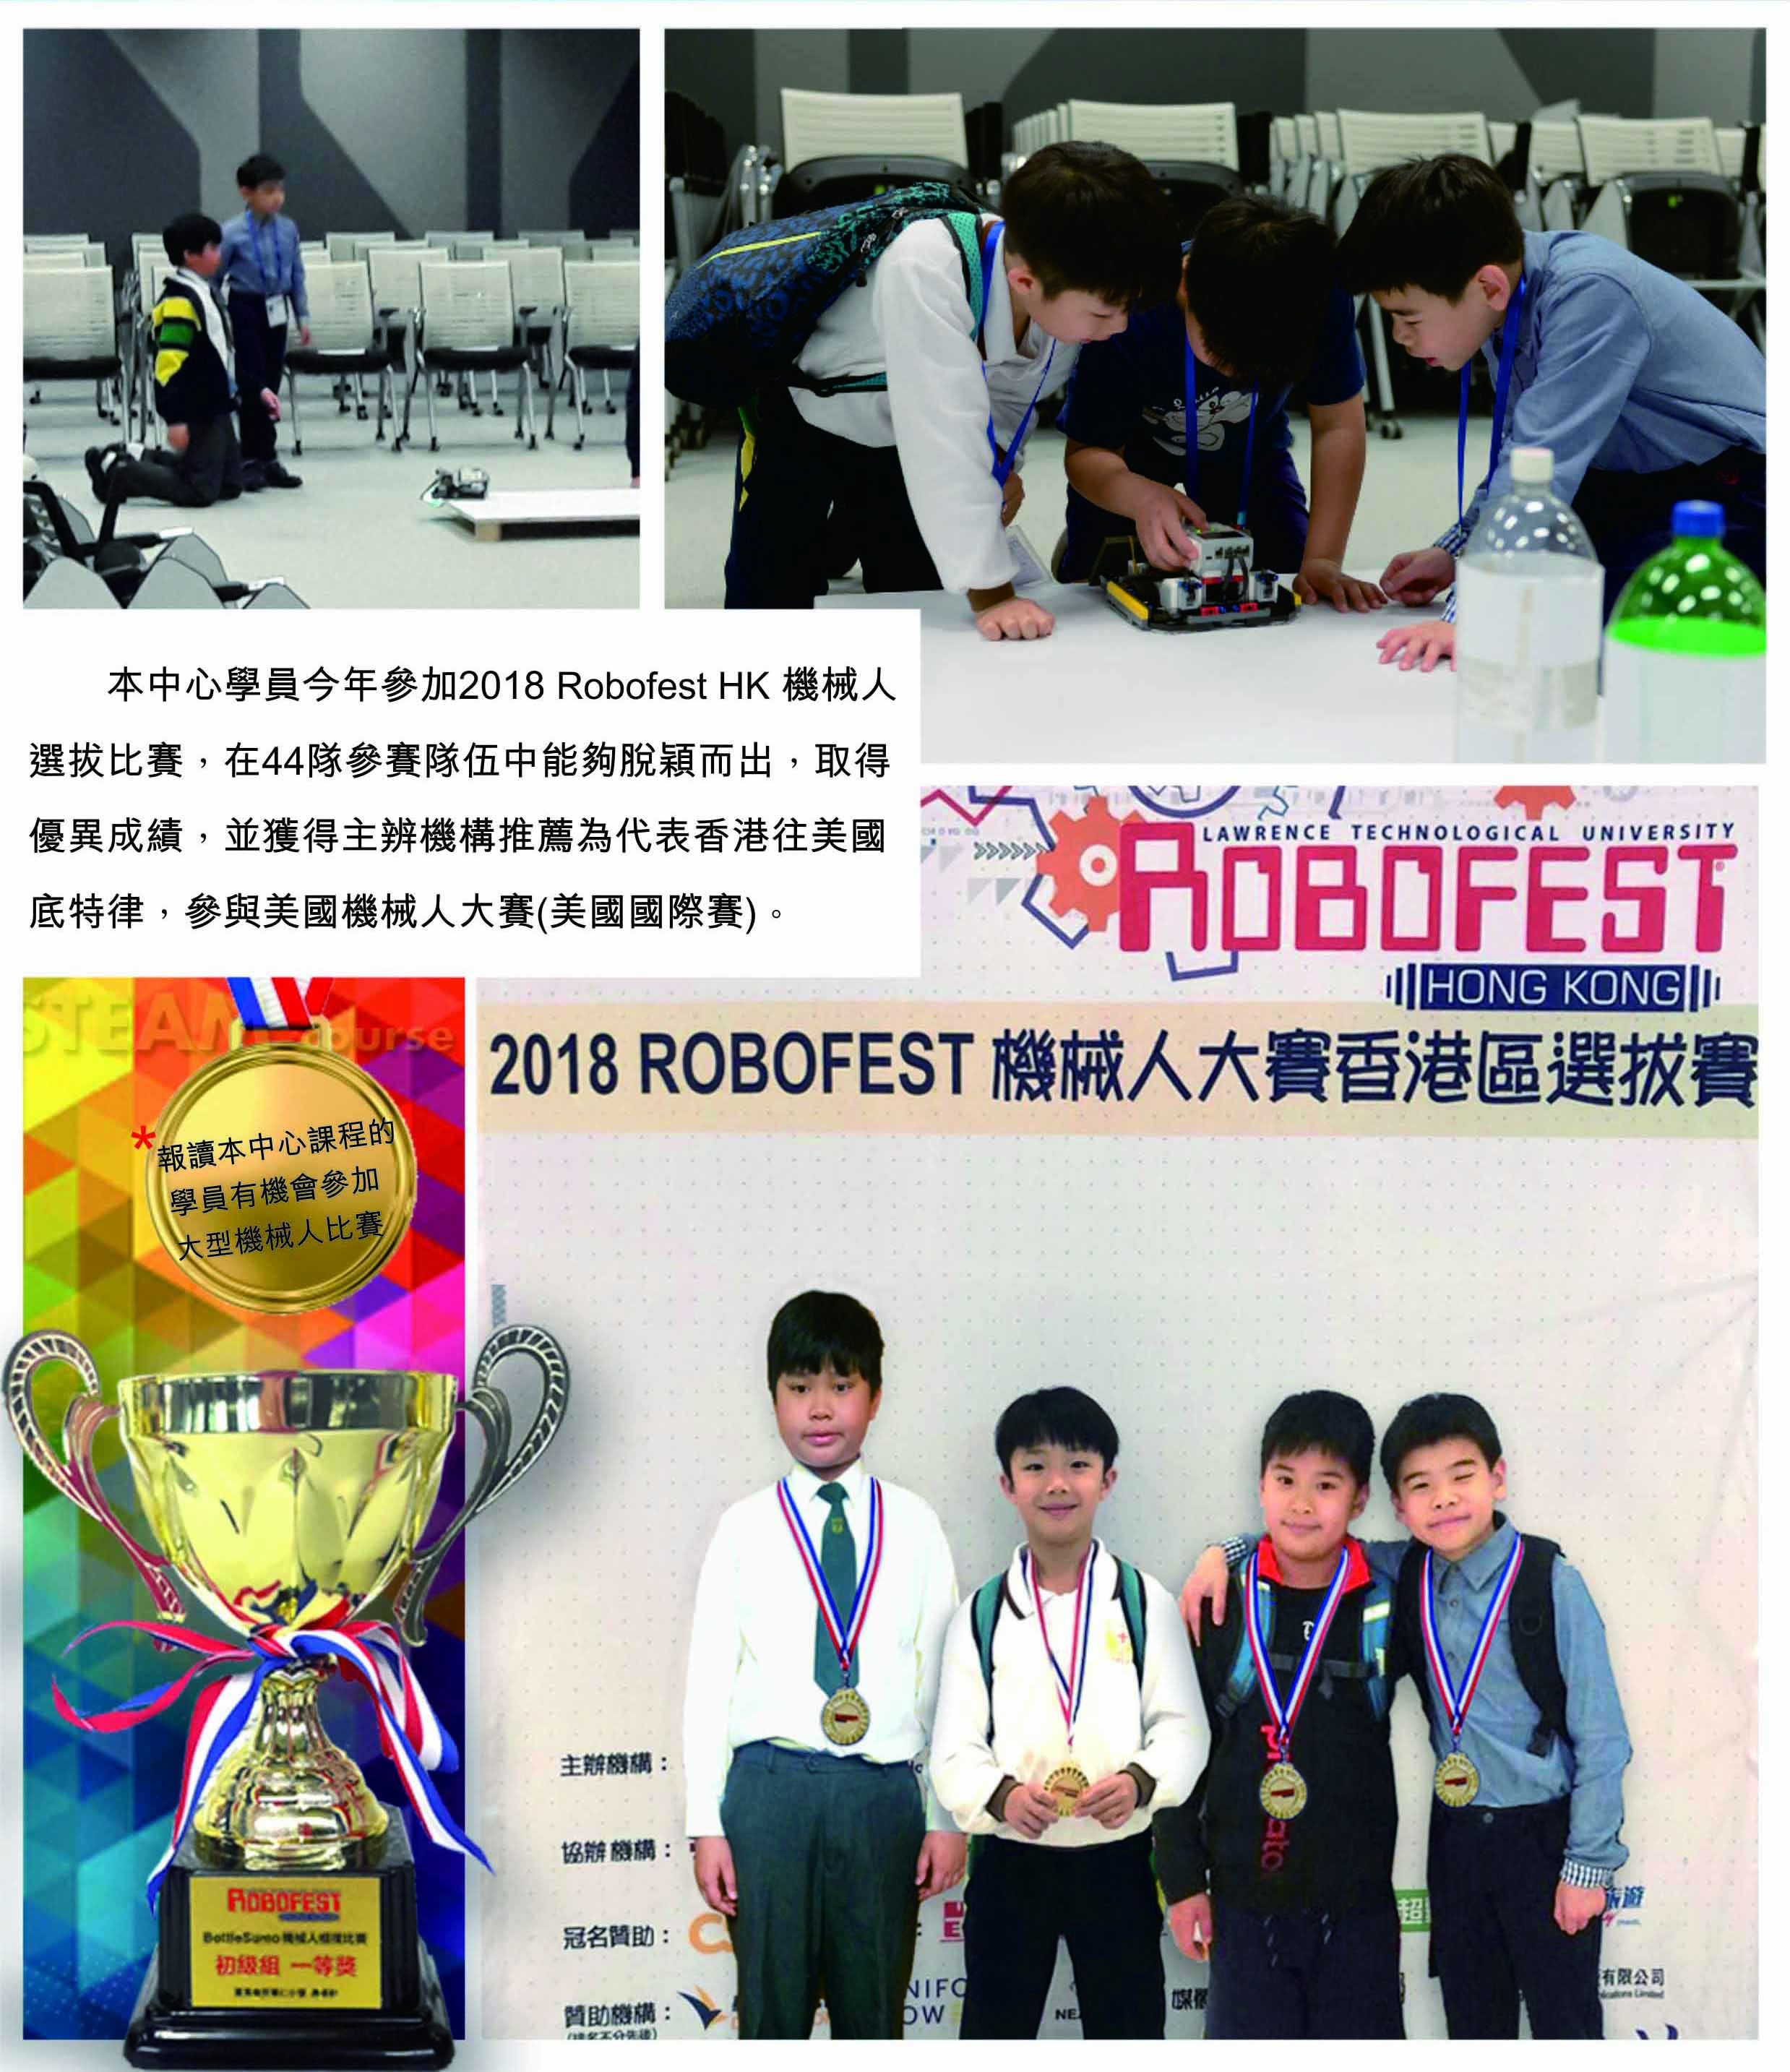 Robofest HK Competition